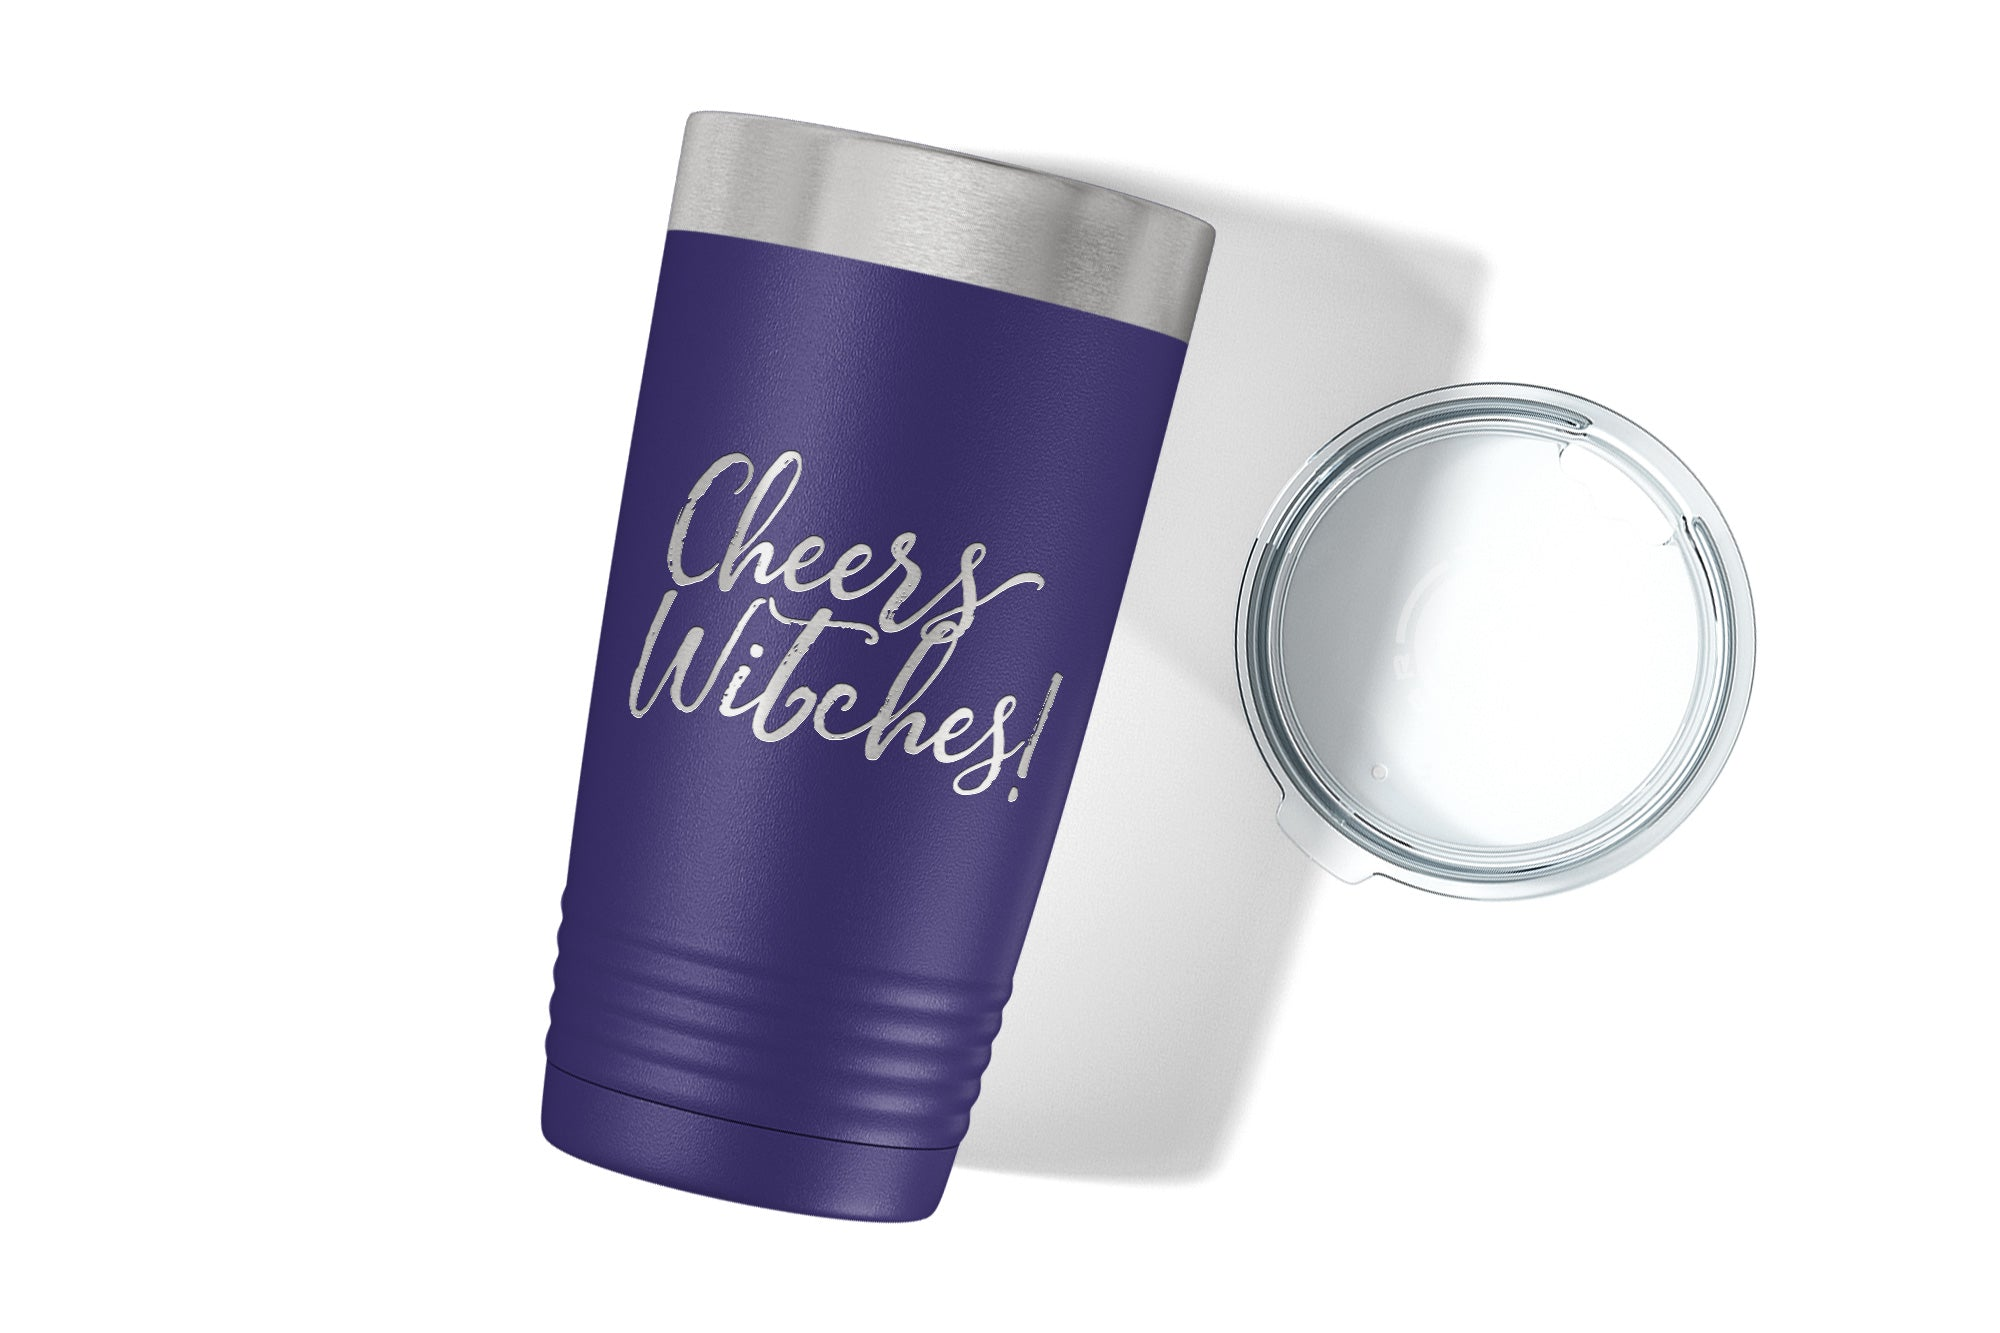 Cheers Witches Engraved Tumbler-Tumblers + Water Bottles-Maddie & Co.